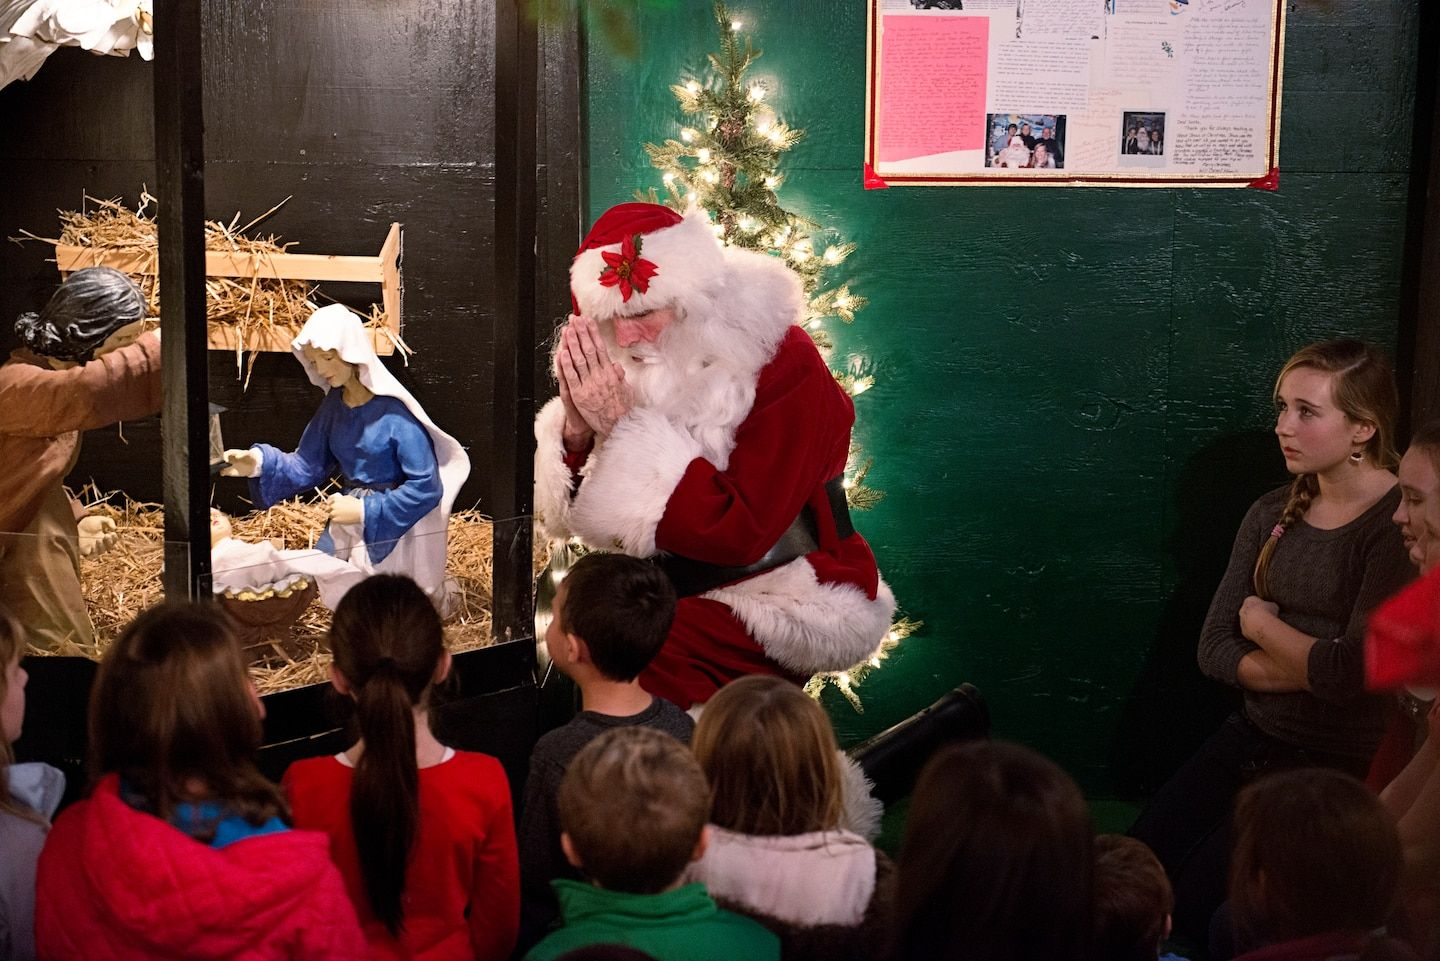 Perspective I met the real Santa Claus. And he has a